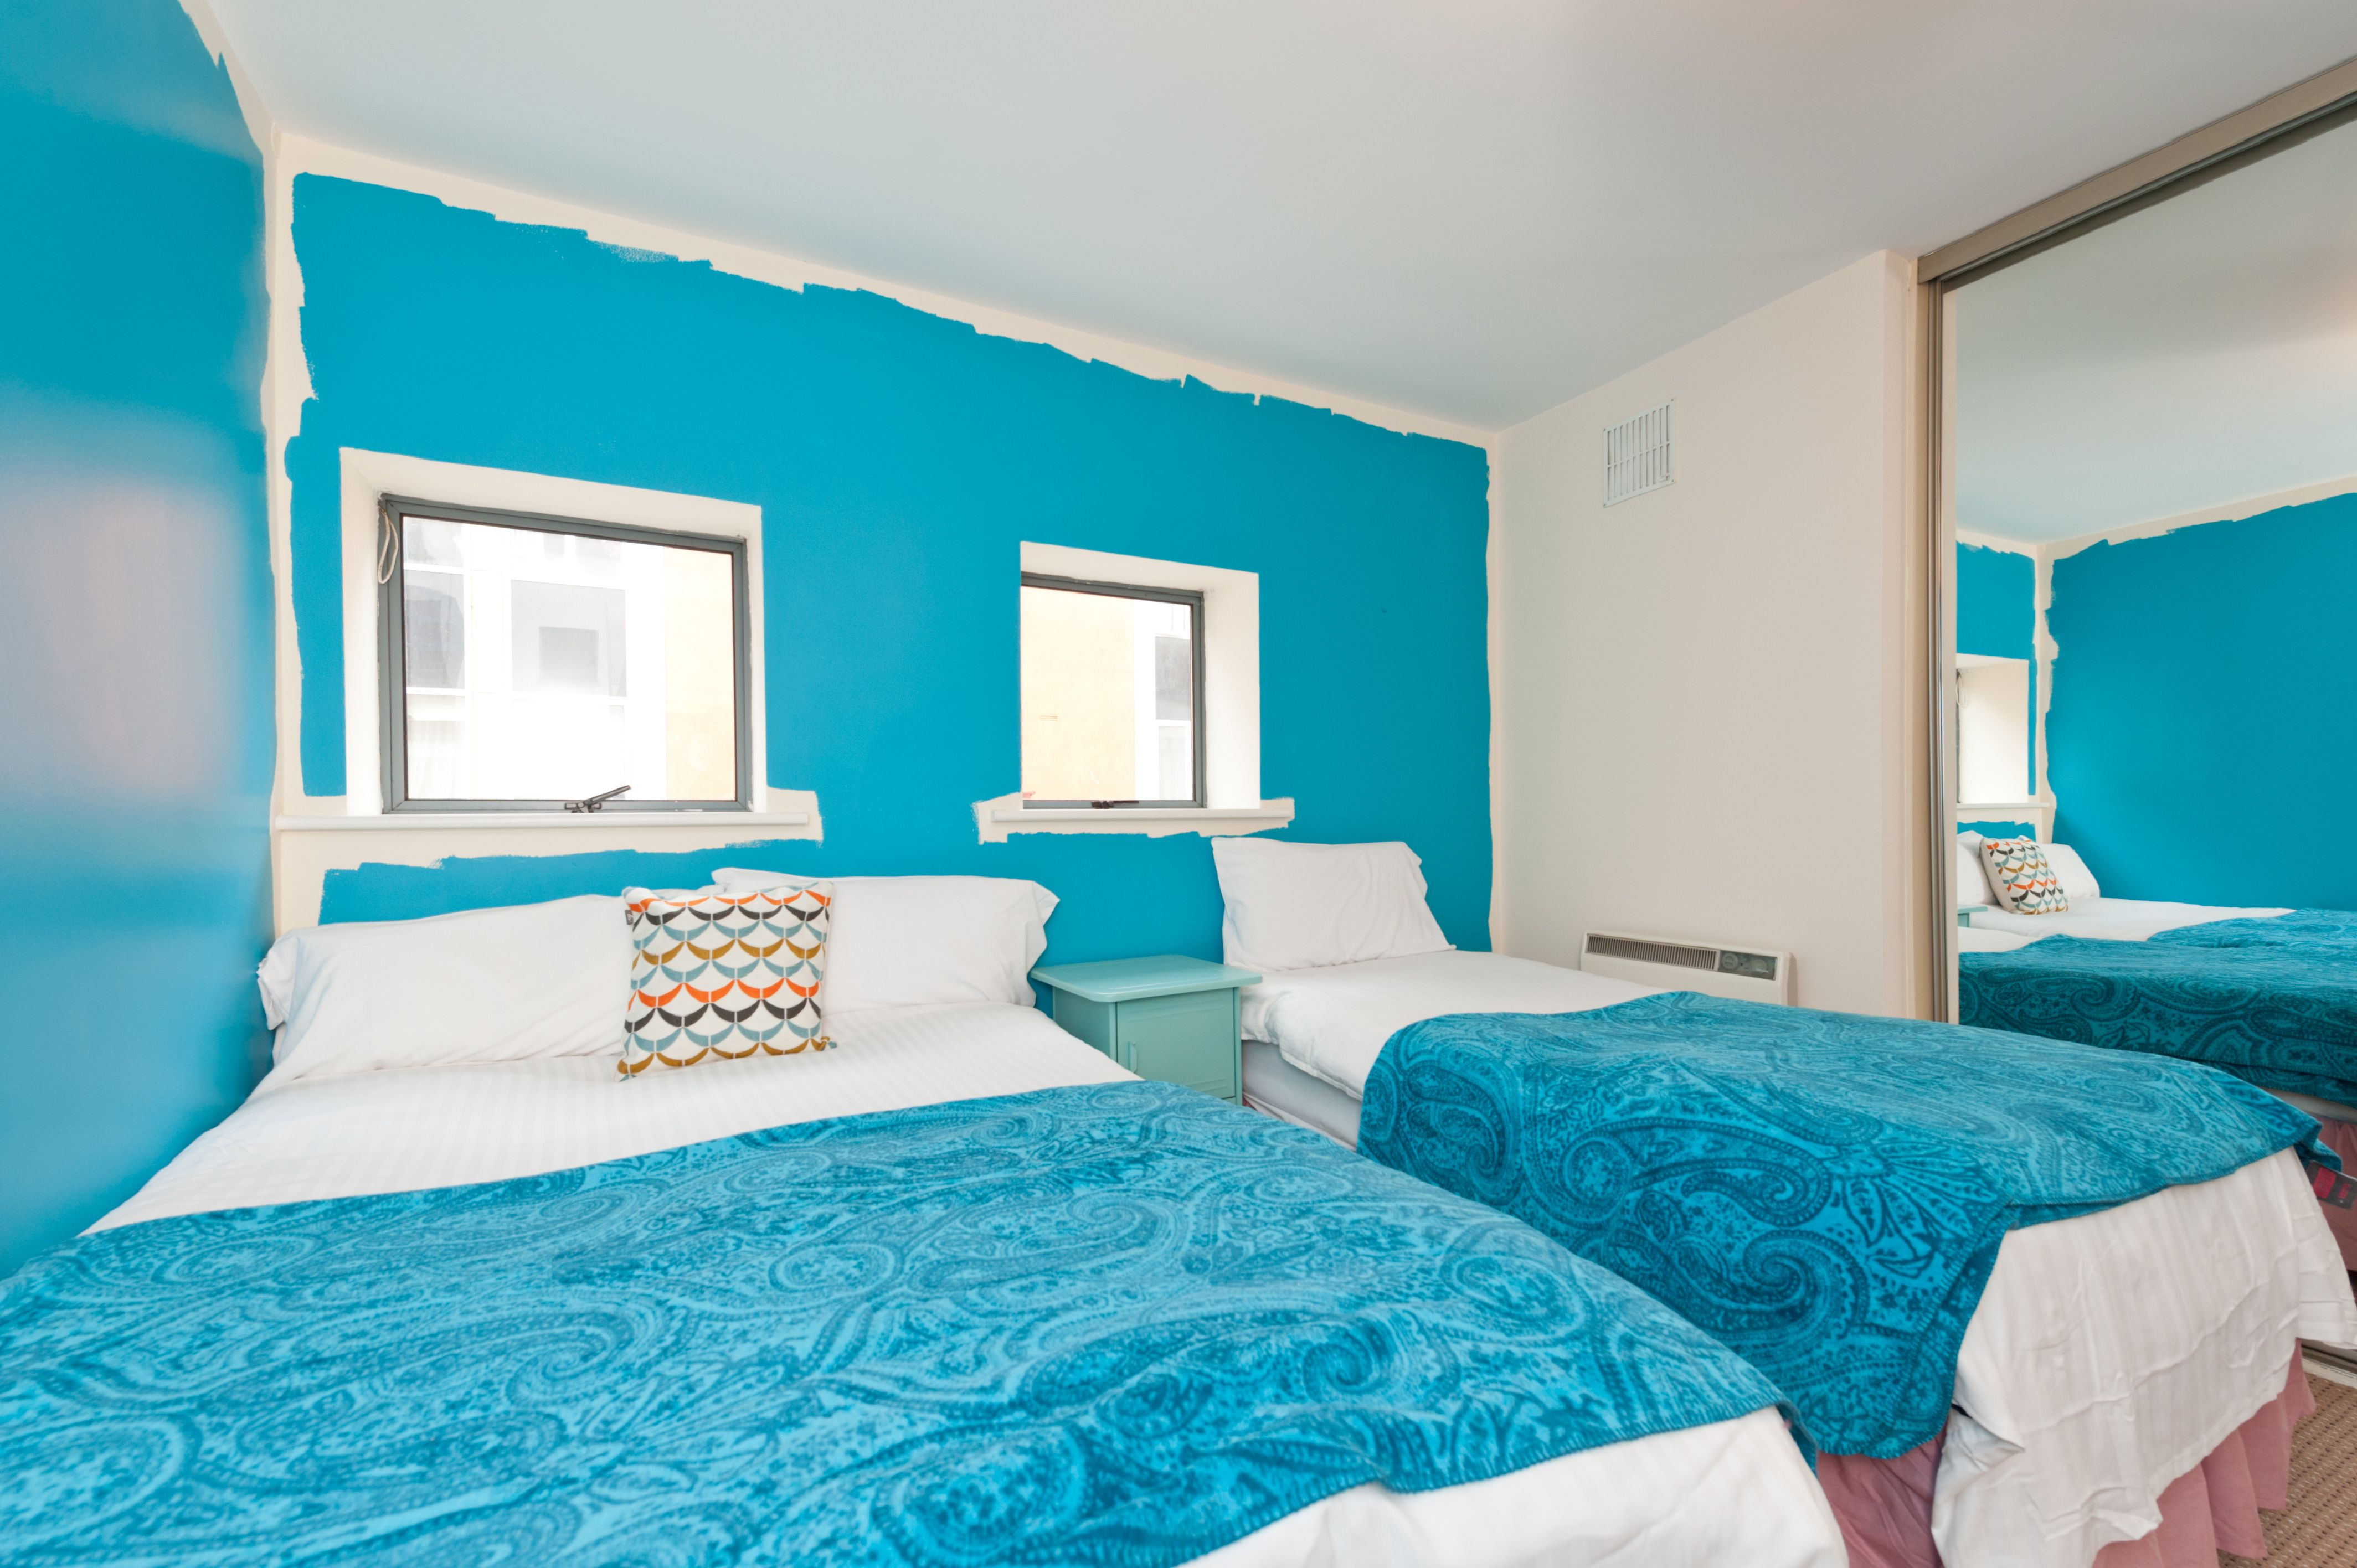 The bright blue bedroom is a great place to unwind